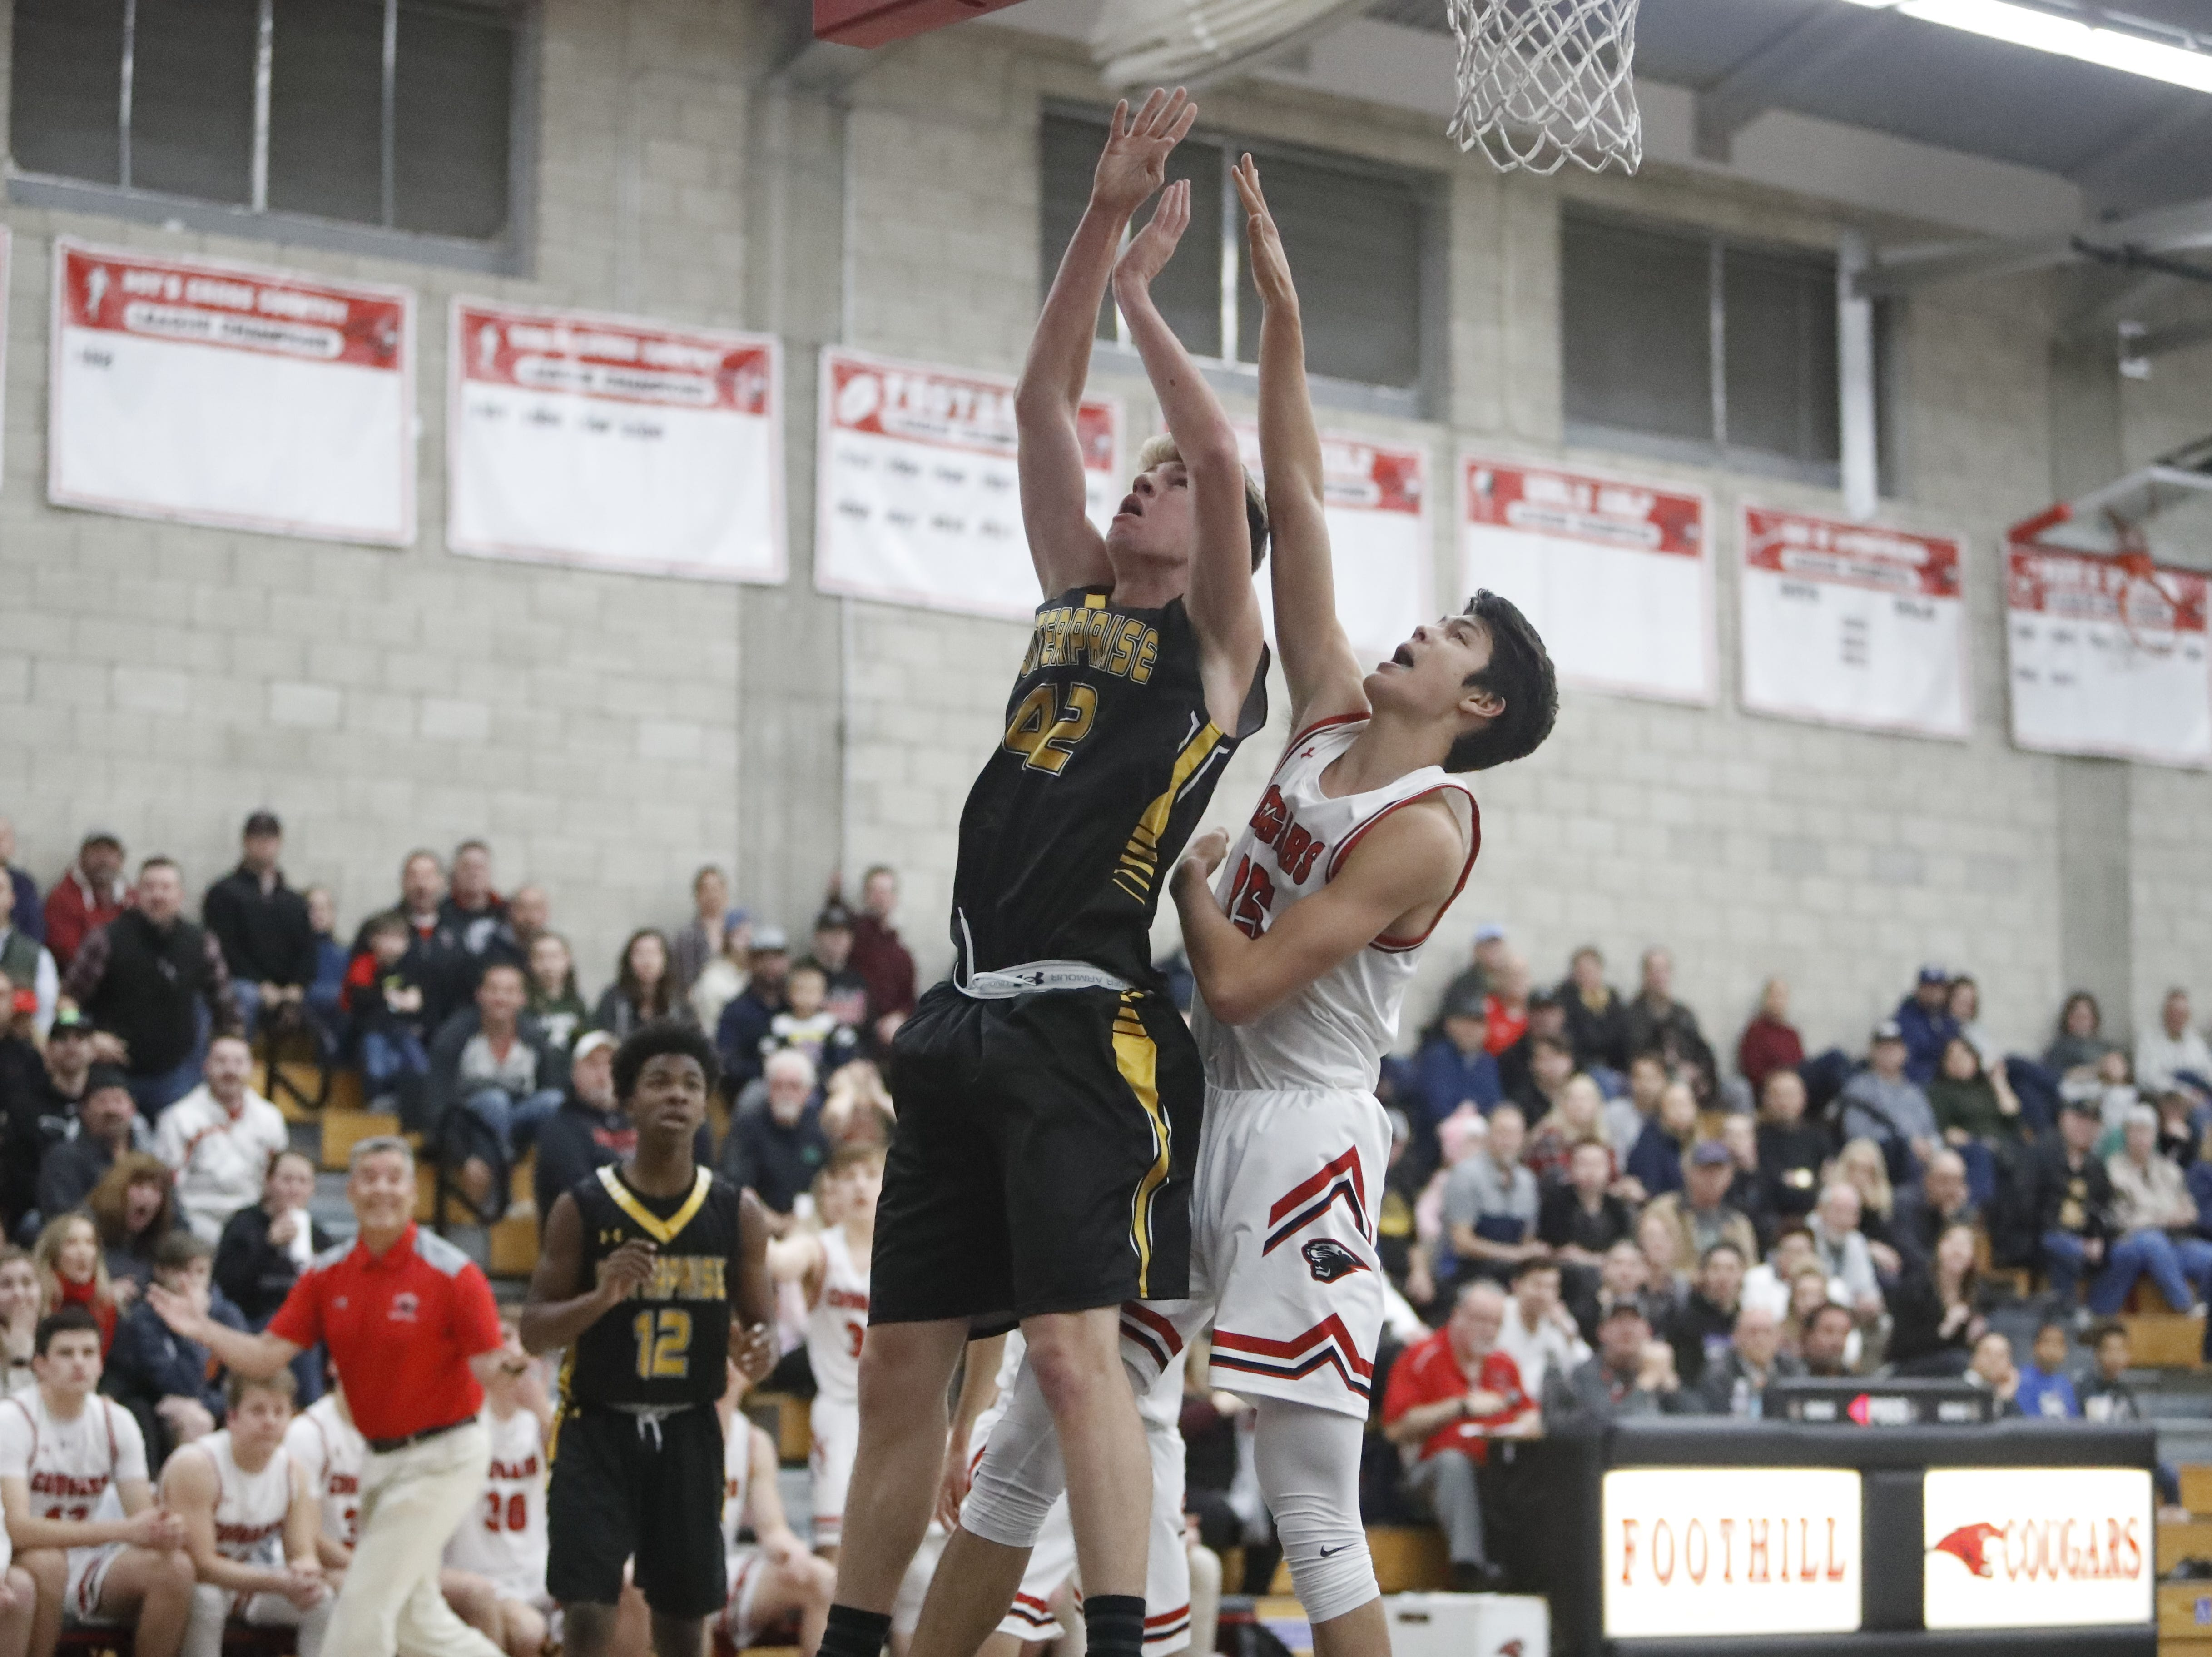 Enterprise senior Khristian Clements (left) fights for a rebound with Foothill's Bekdoo Lewis during the Cougars' 55-50 win over the Hornets  in the Division III Northern Section semifinals on Wednesday, Feb. 20.